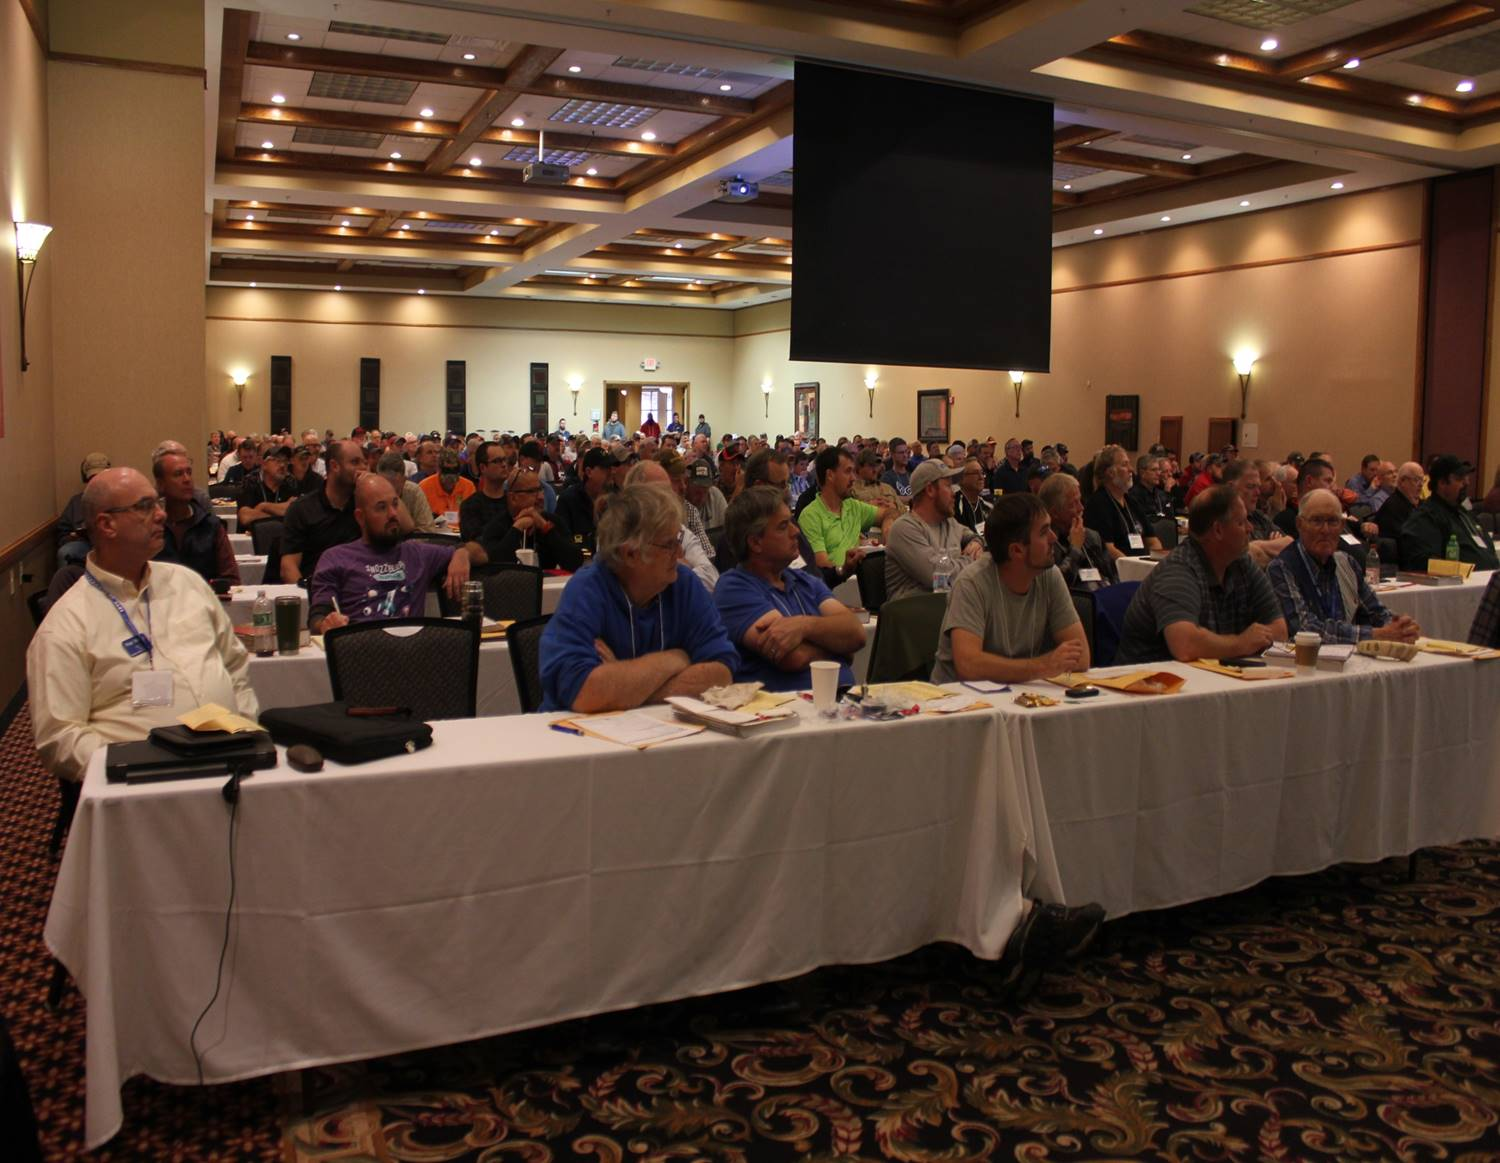 2018 was a year for setting records. The attendance was over 300 electricians gaining knowledge.